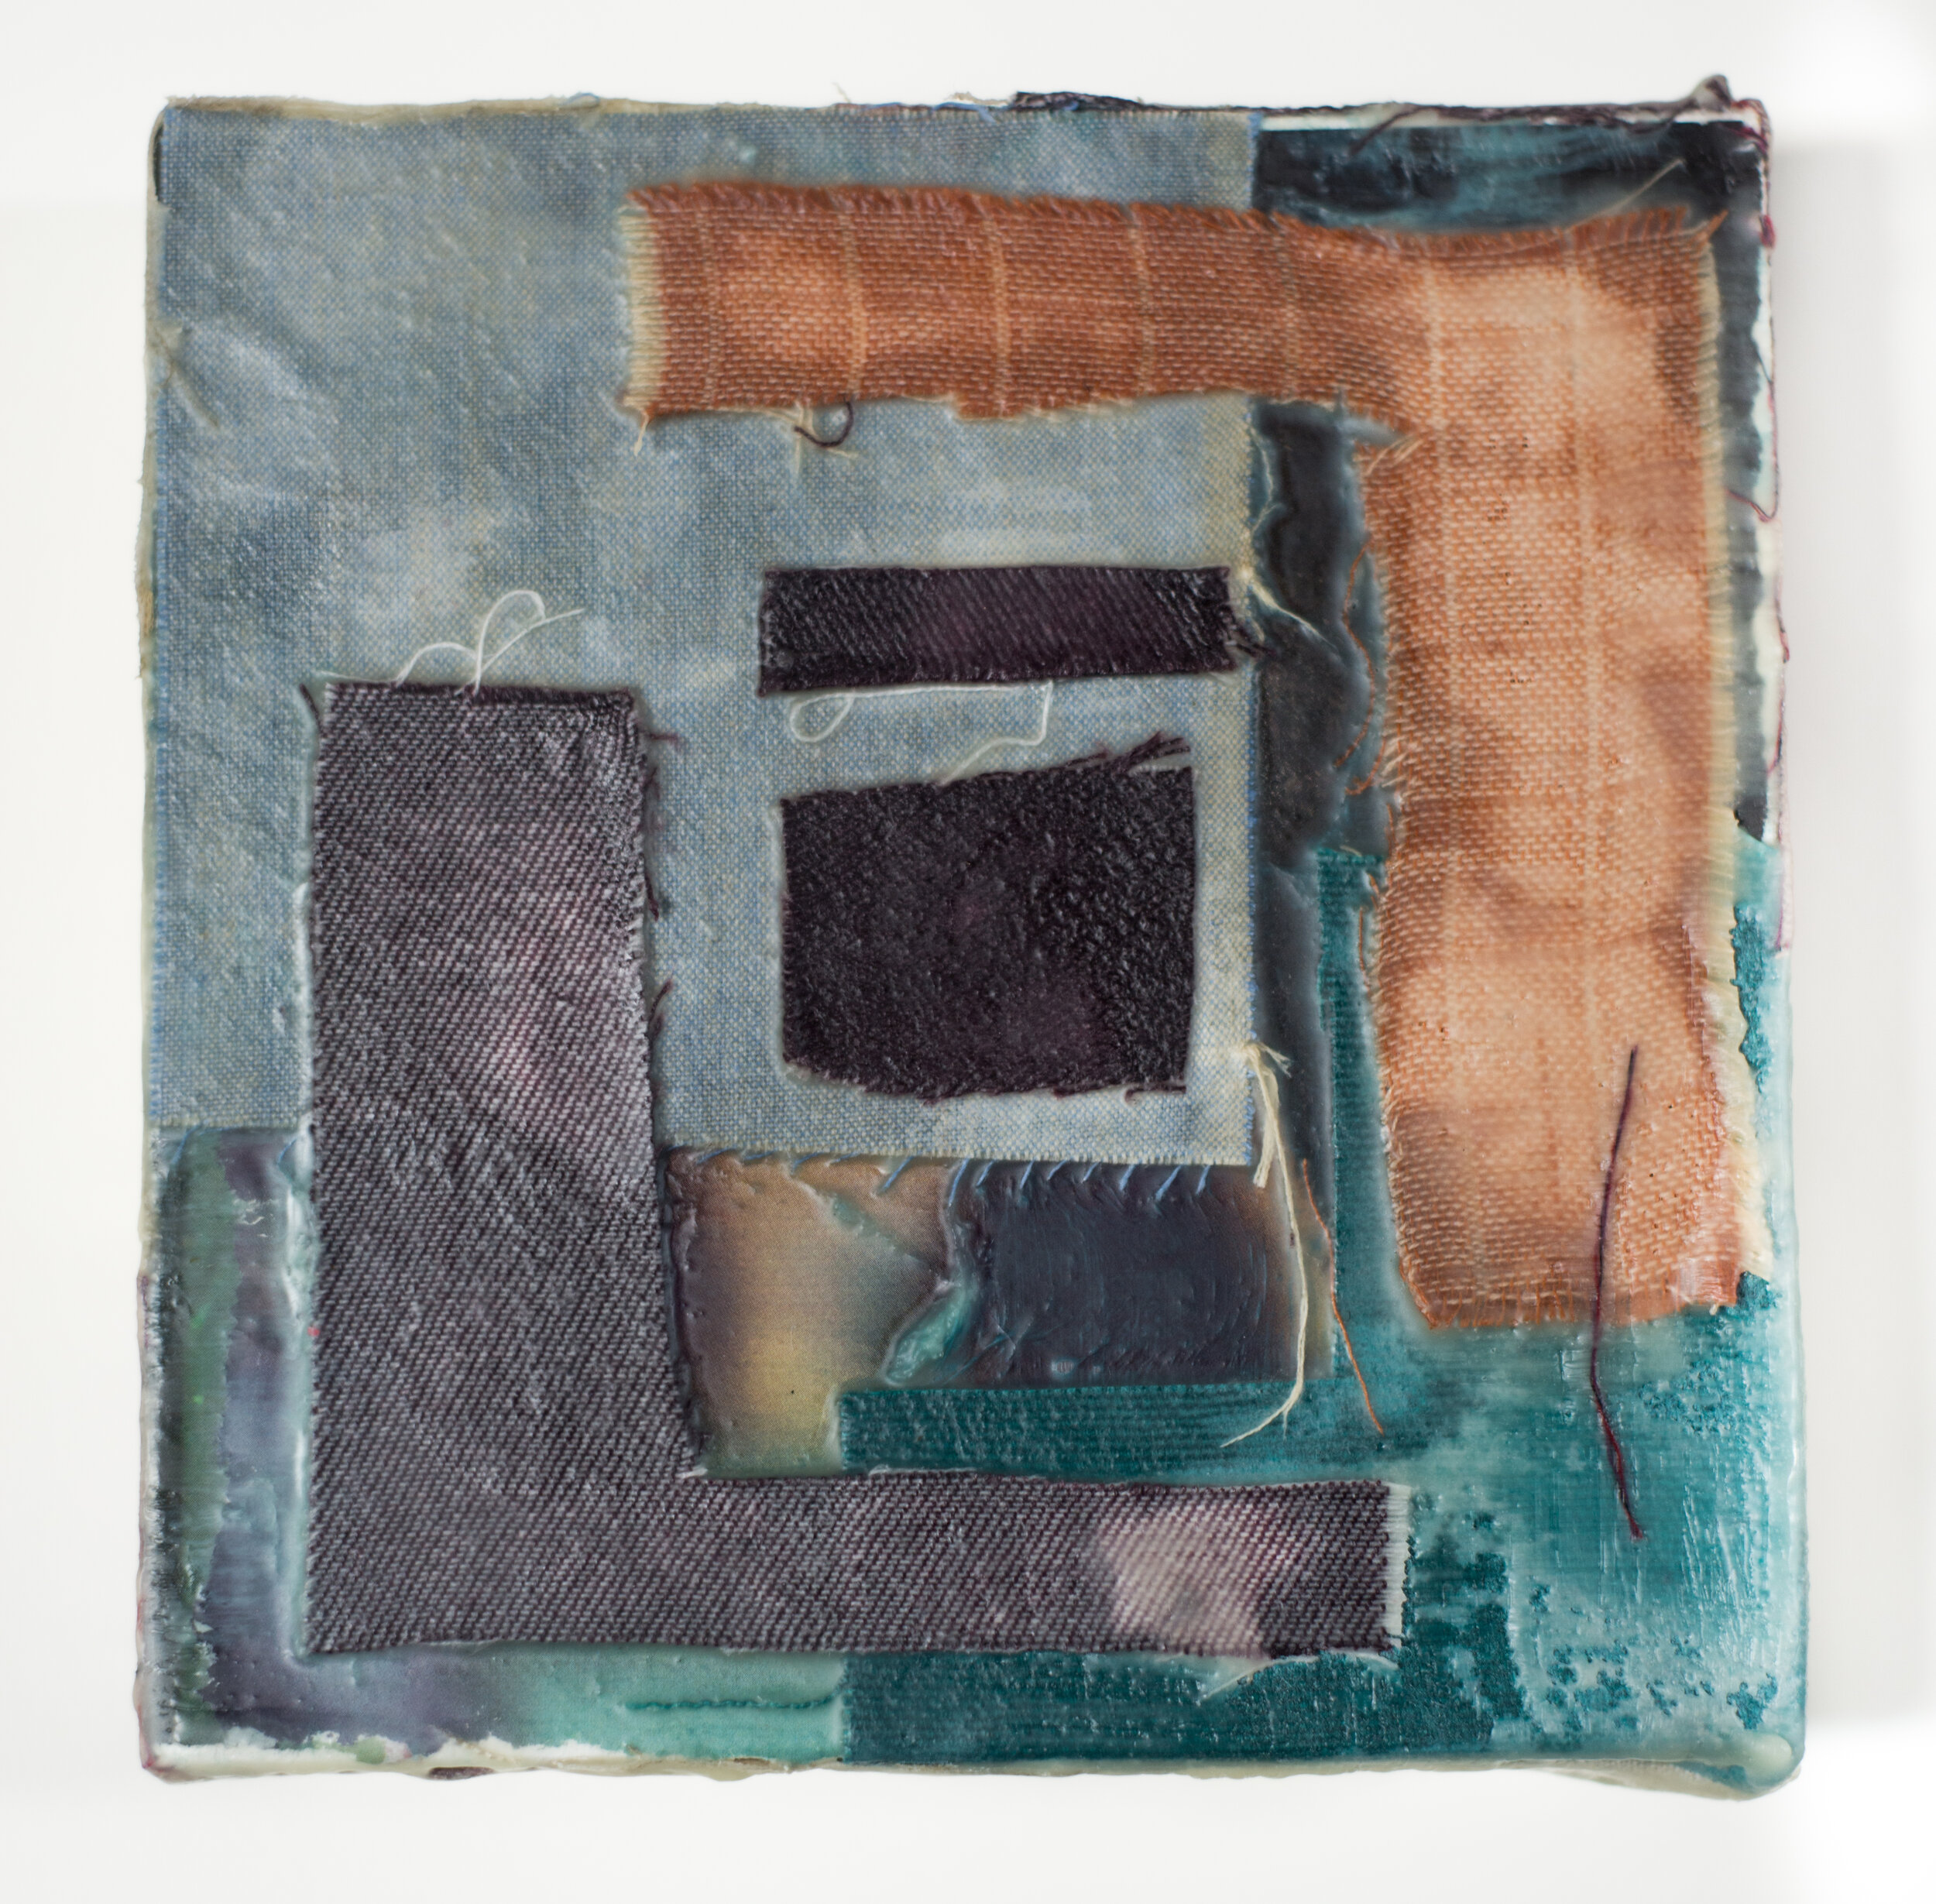 """Remnant #8  6""""x6"""", Encaustic & Fabric mounted on Birch Cradled Panel, 2019"""